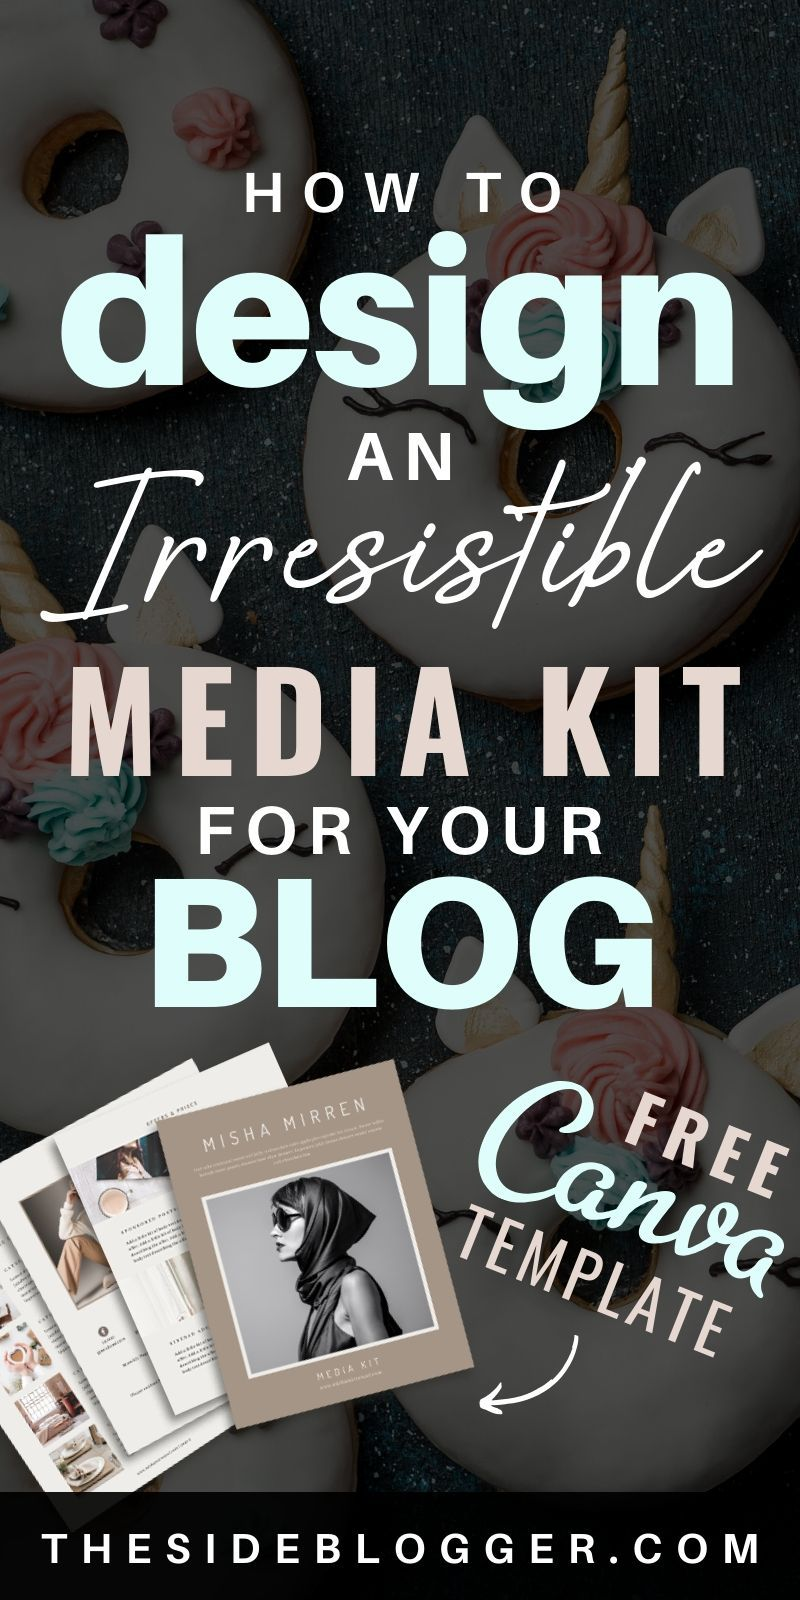 If you're a serious blogger who wants to make money from blogging, there's serious money to be made with sponsored posts. And the first thing you need to secure a sponsored post is a media kit. A well designed media kit will take you far with high-ticket brands and companies that you love and want to partner with. In this post, Ill show you how to design an effective media kit (includes FREE template). #bloggingresources #blogging #makemoneyblogging #mediakit #canvatemplate